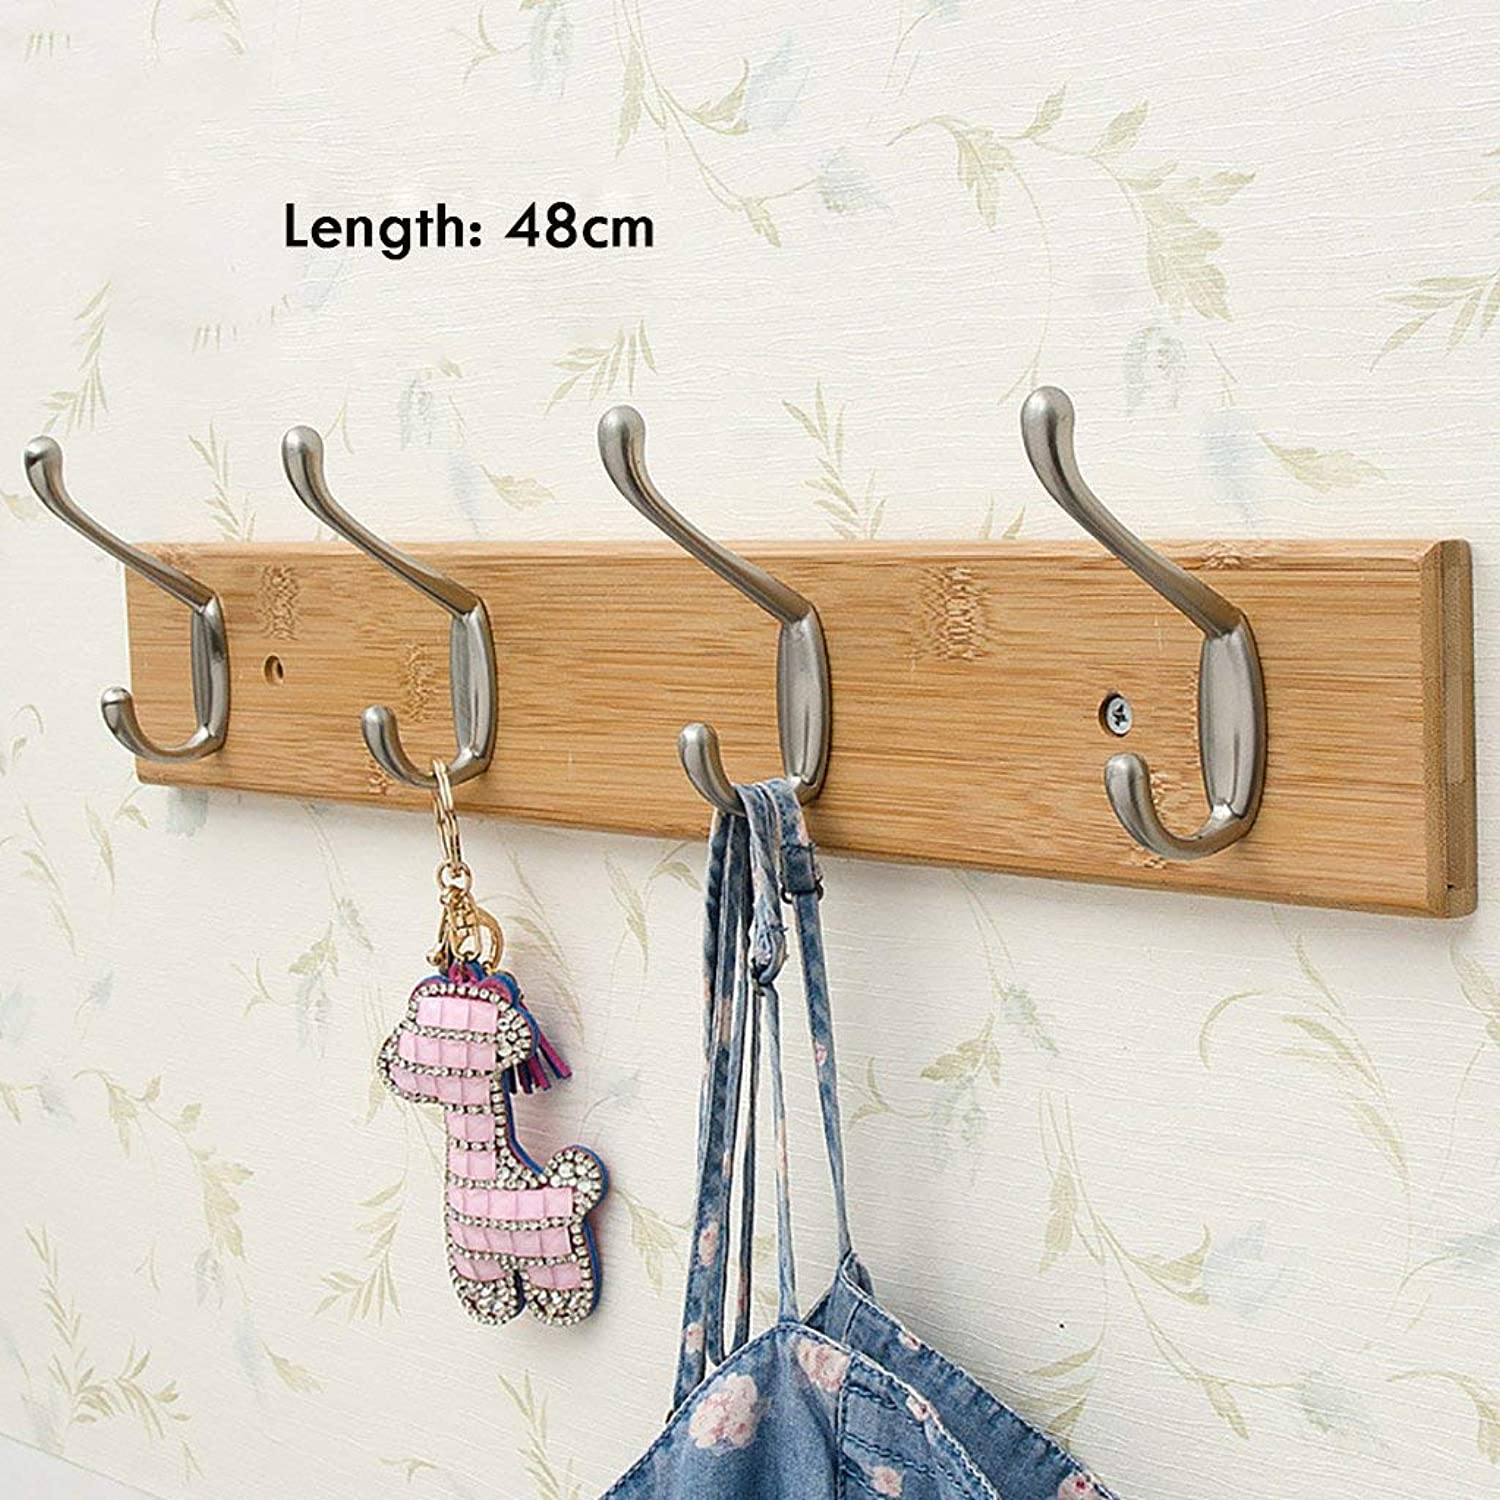 Living Room Decorative Hanging Shelves Wall-Mounted Coat Rack, Bedroom Solid Wood Wall Hook, Natural Bamboo Wall Frame, Wall Decoration Frame (Size   87cm) (Size   48cm)